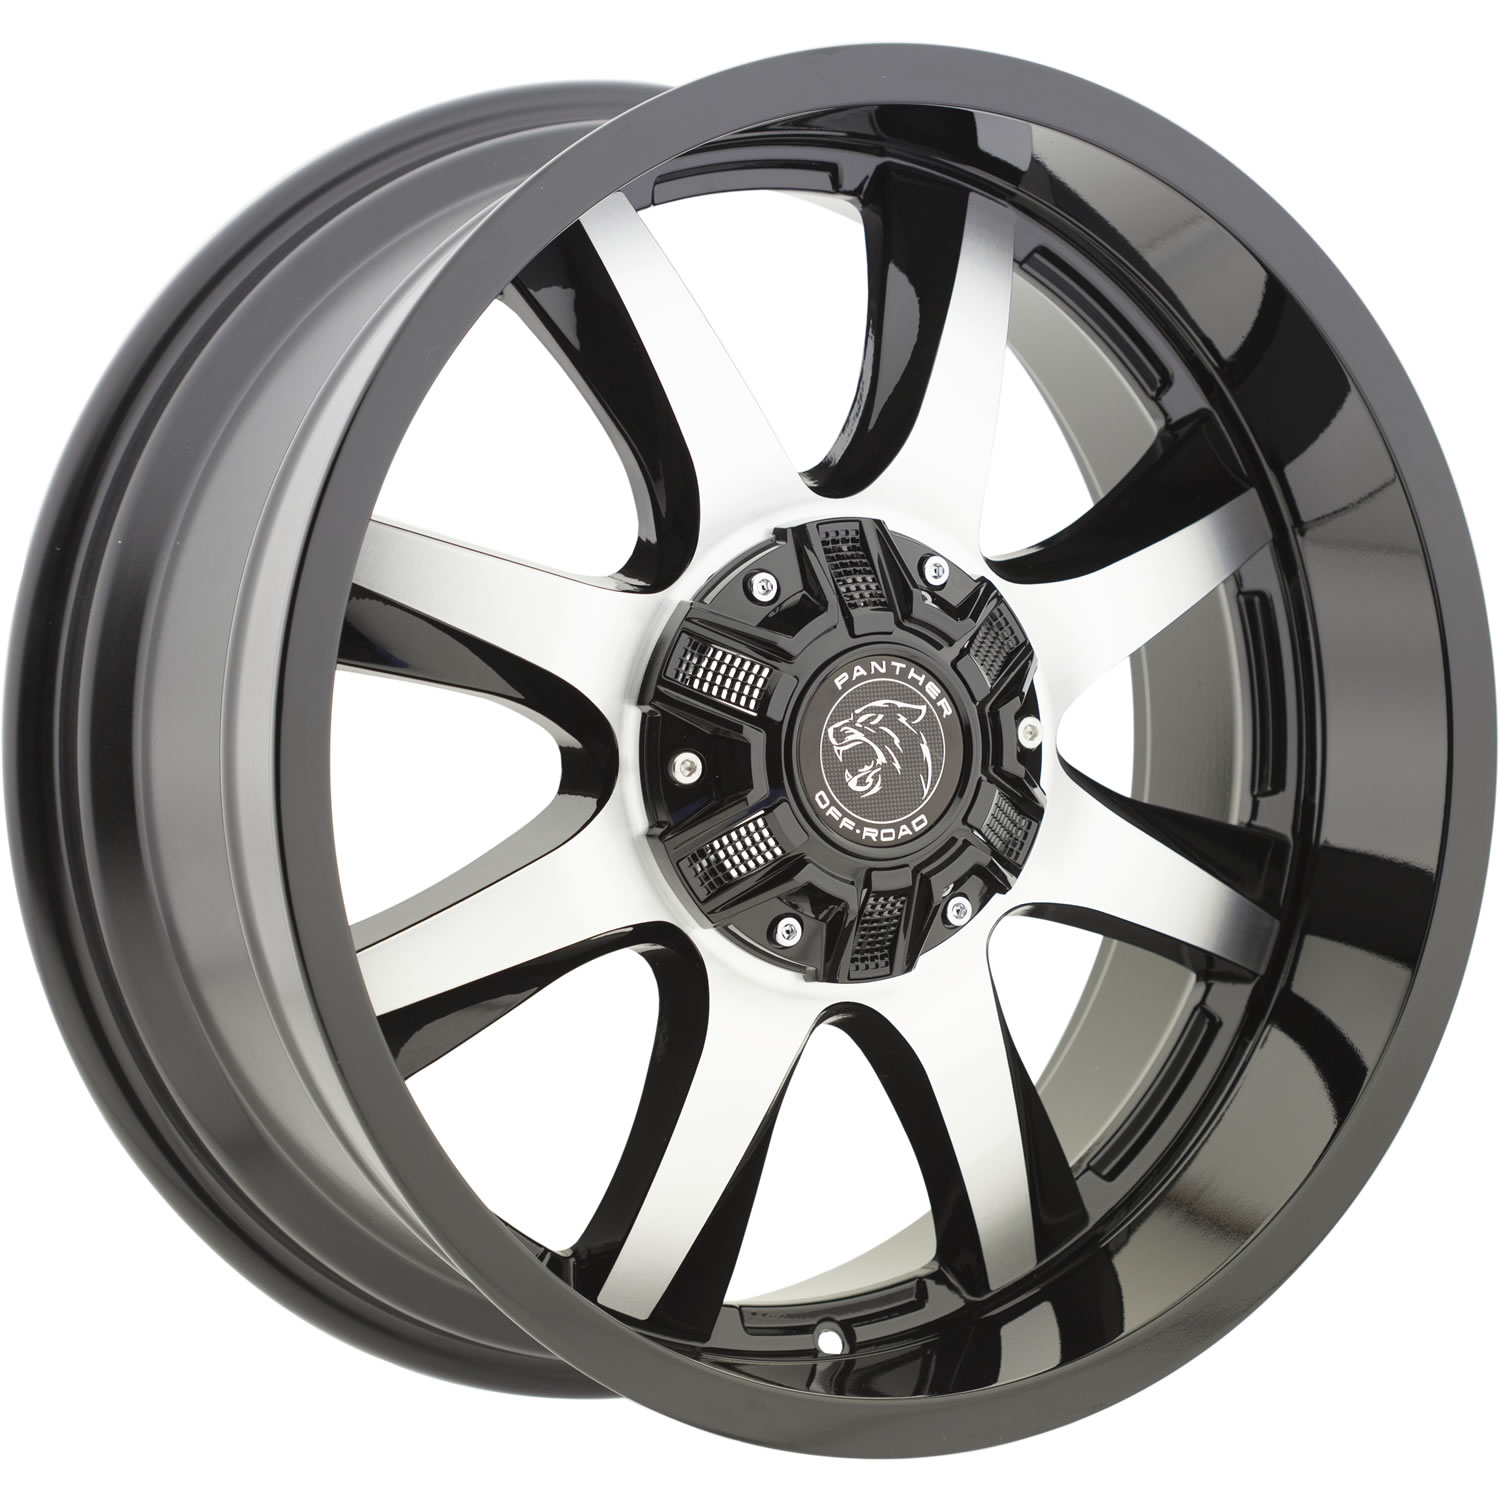 Panther Offroad 578 20x9 12 Custom Wheels